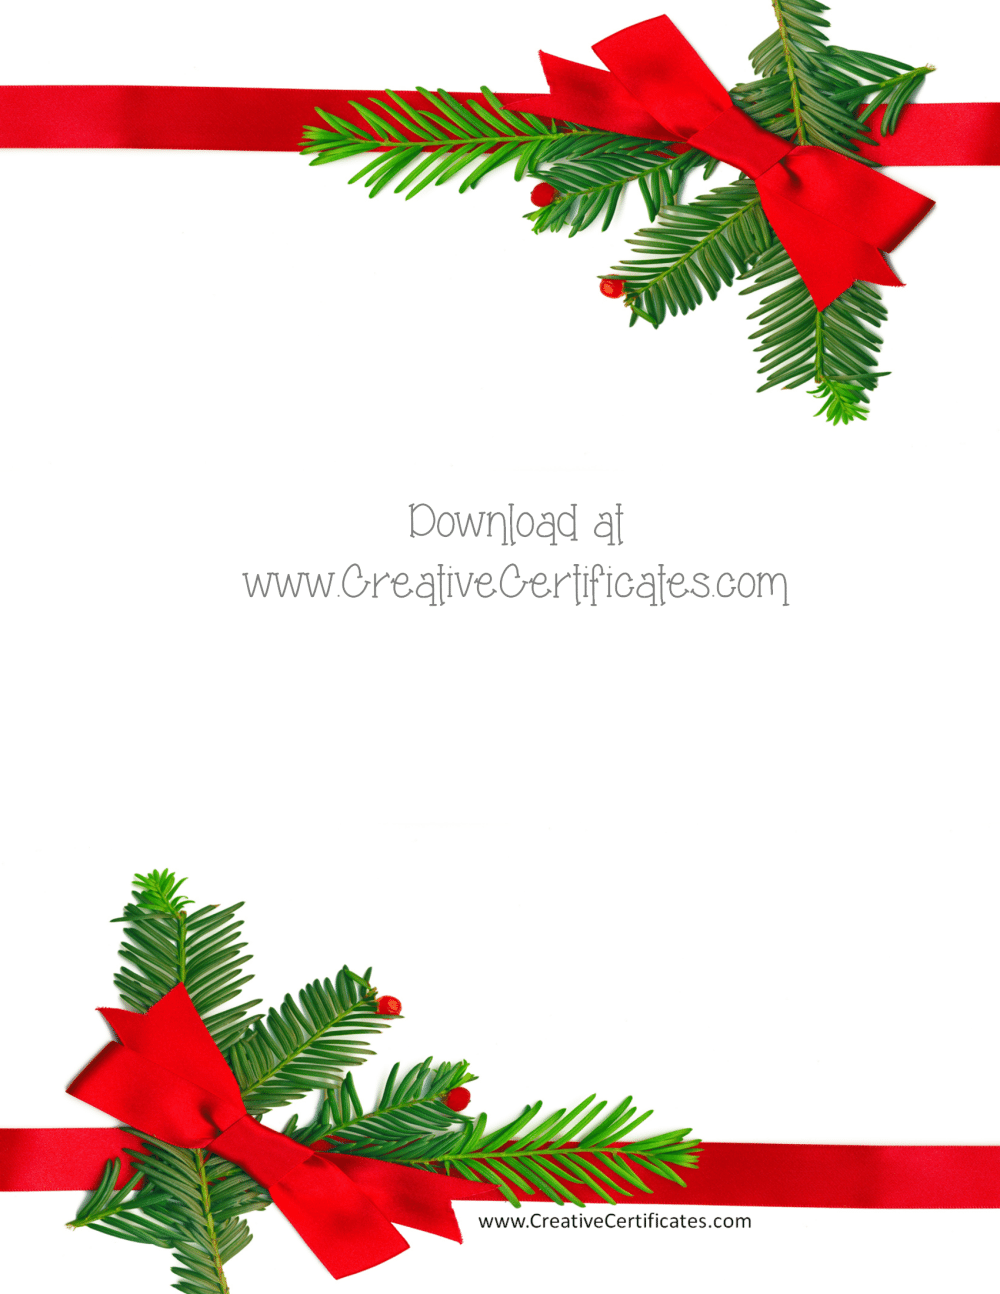 Free Christmas Border Templates Customize Online Then Download